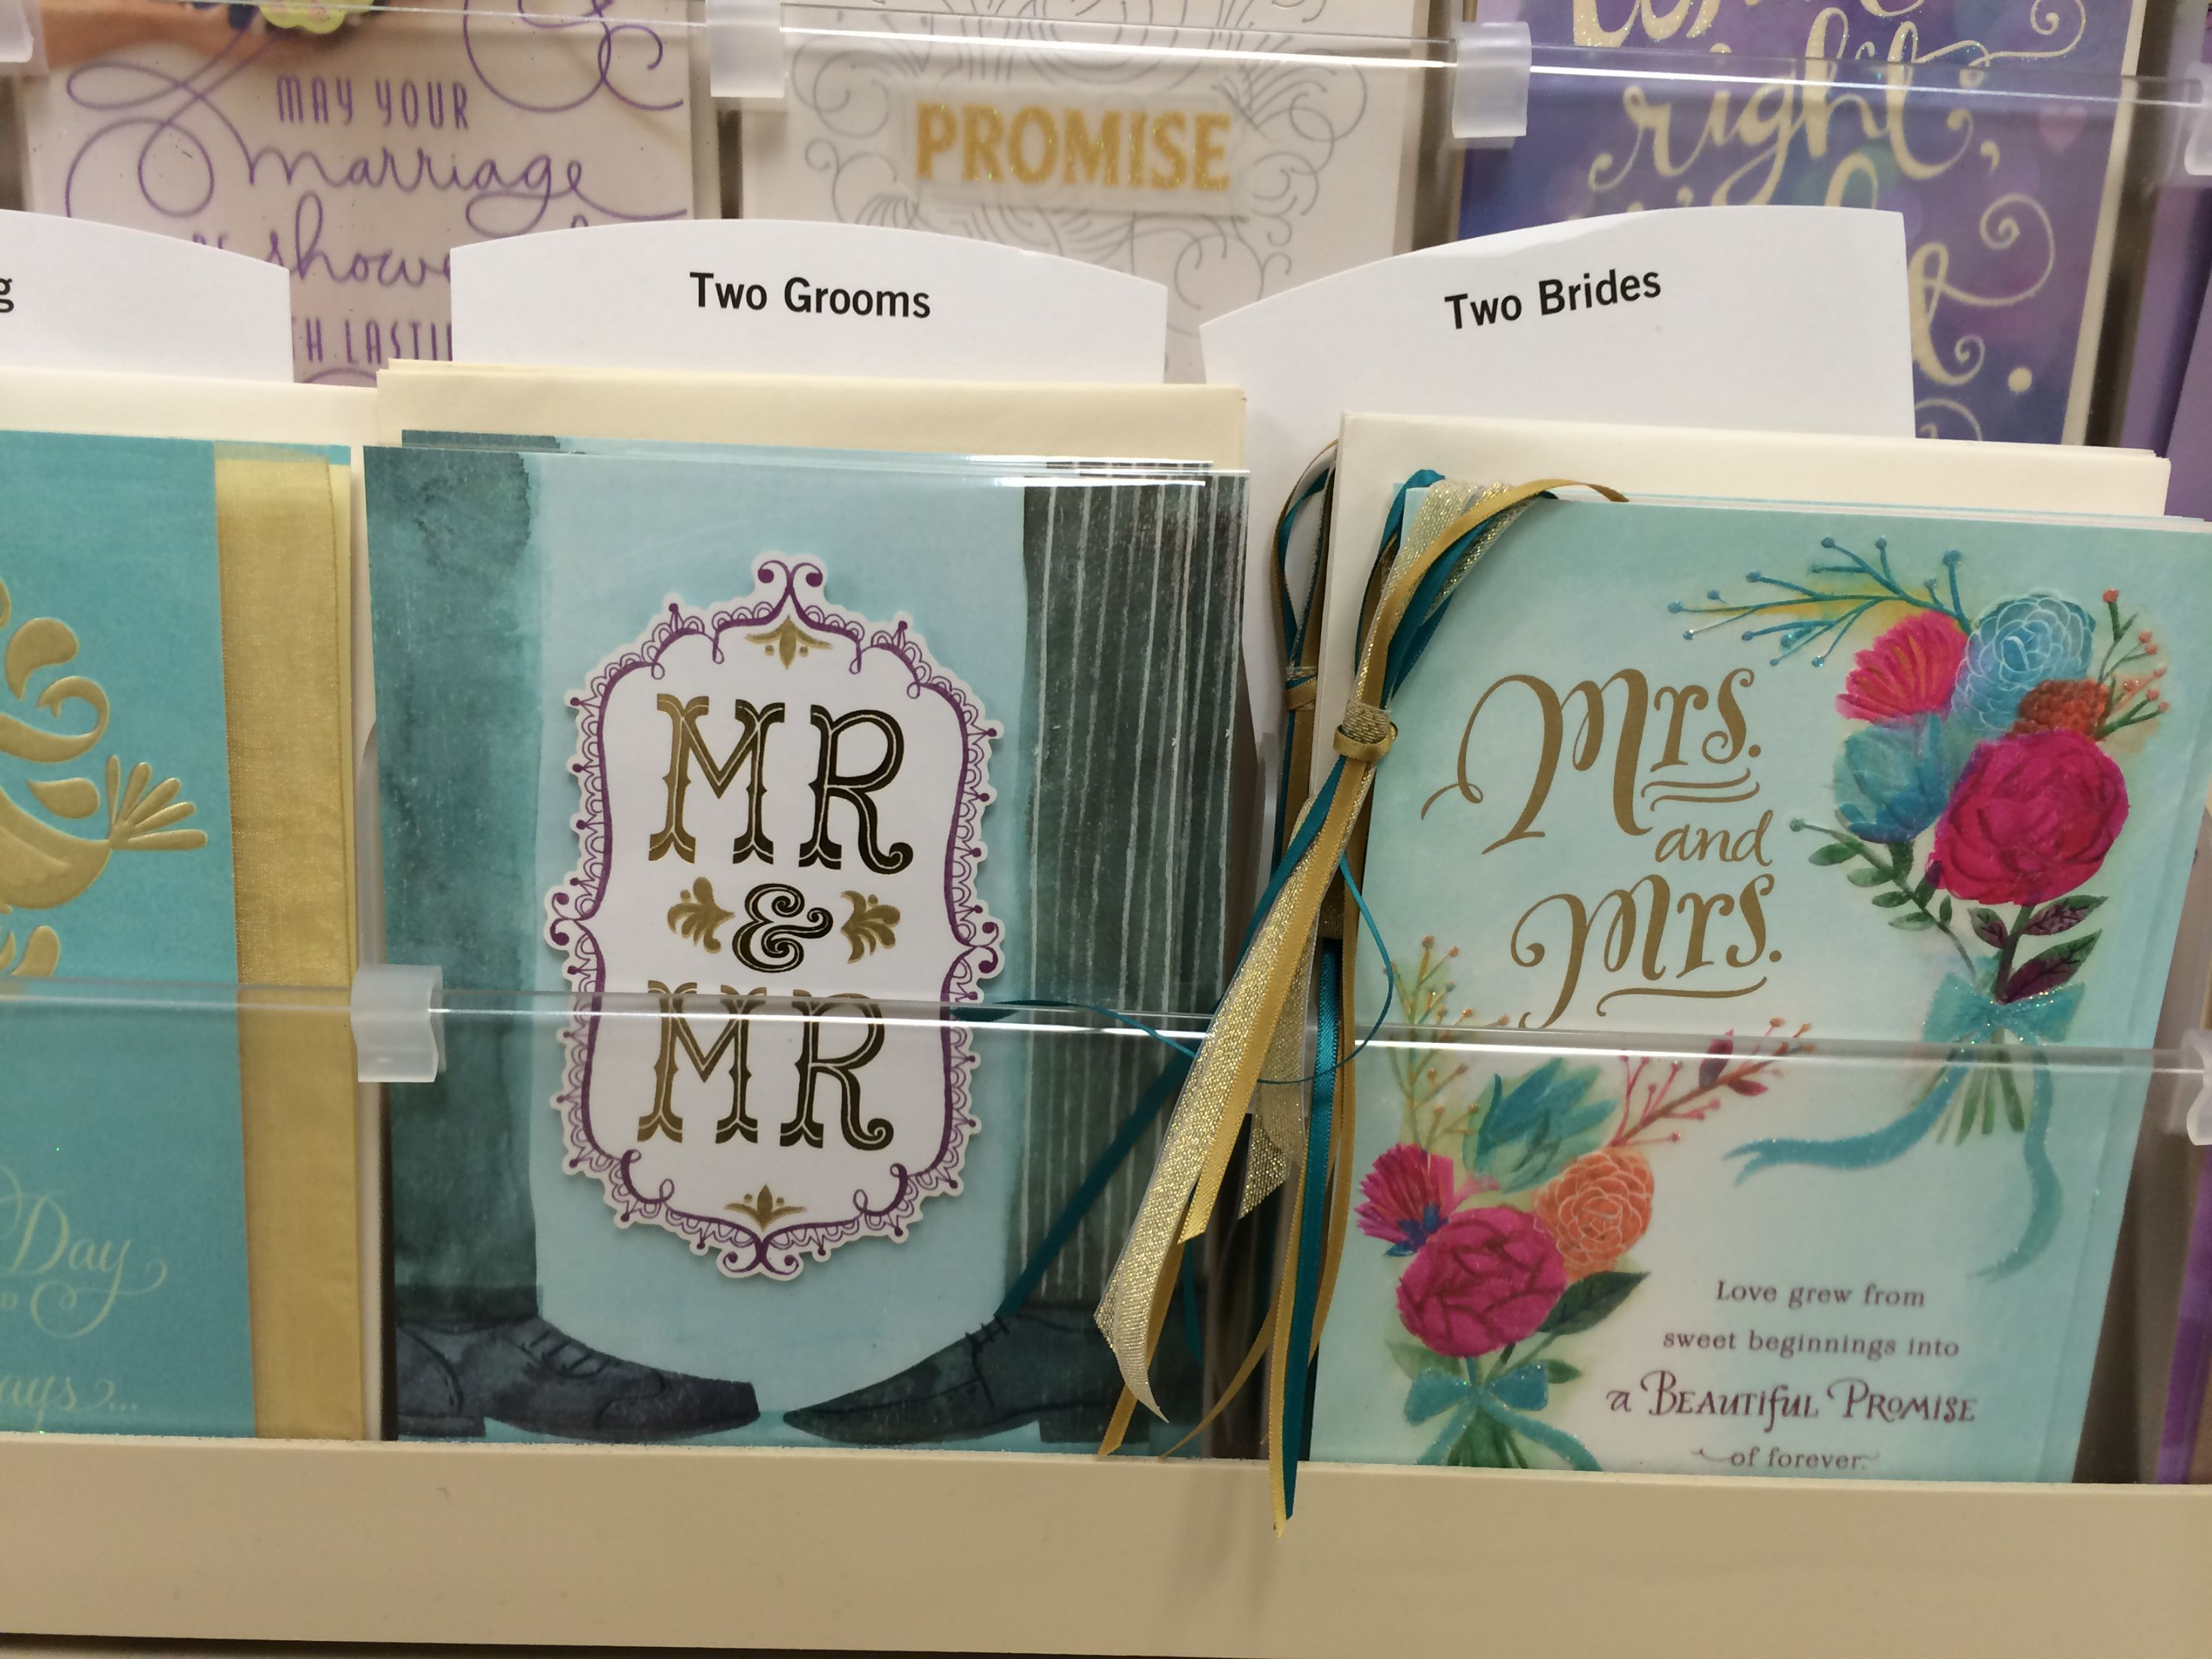 Brigham young university bookstore accidentally stocks greeting brigham young university bookstore accidentally stocks greeting cards celebrating same sex weddings kristyandbryce Choice Image